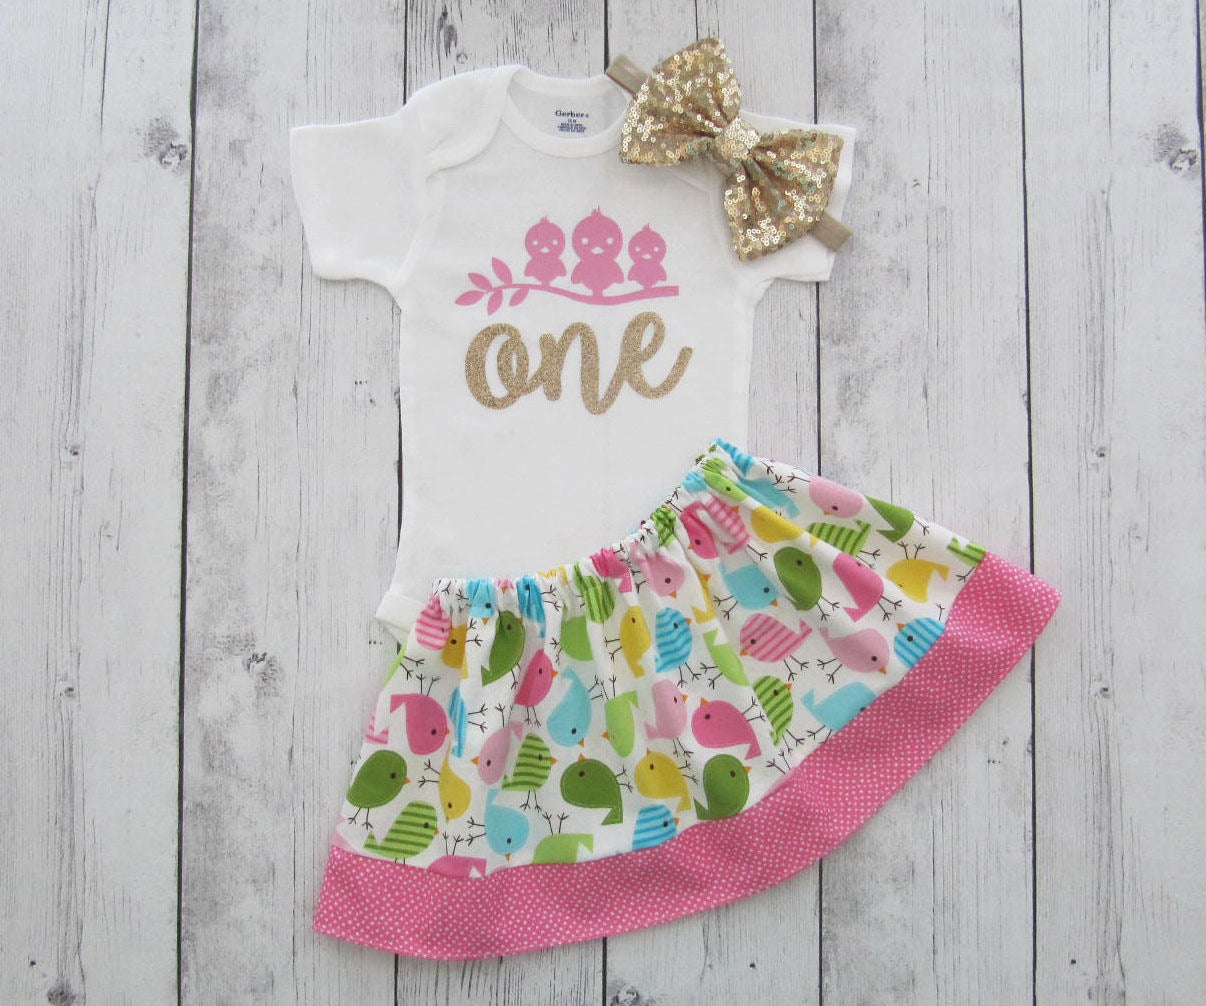 SALE - Bird First Birthday Outfit in colorful bird print - twirl skirt, girl birthday outfit, spring birthday, first birthday outfit